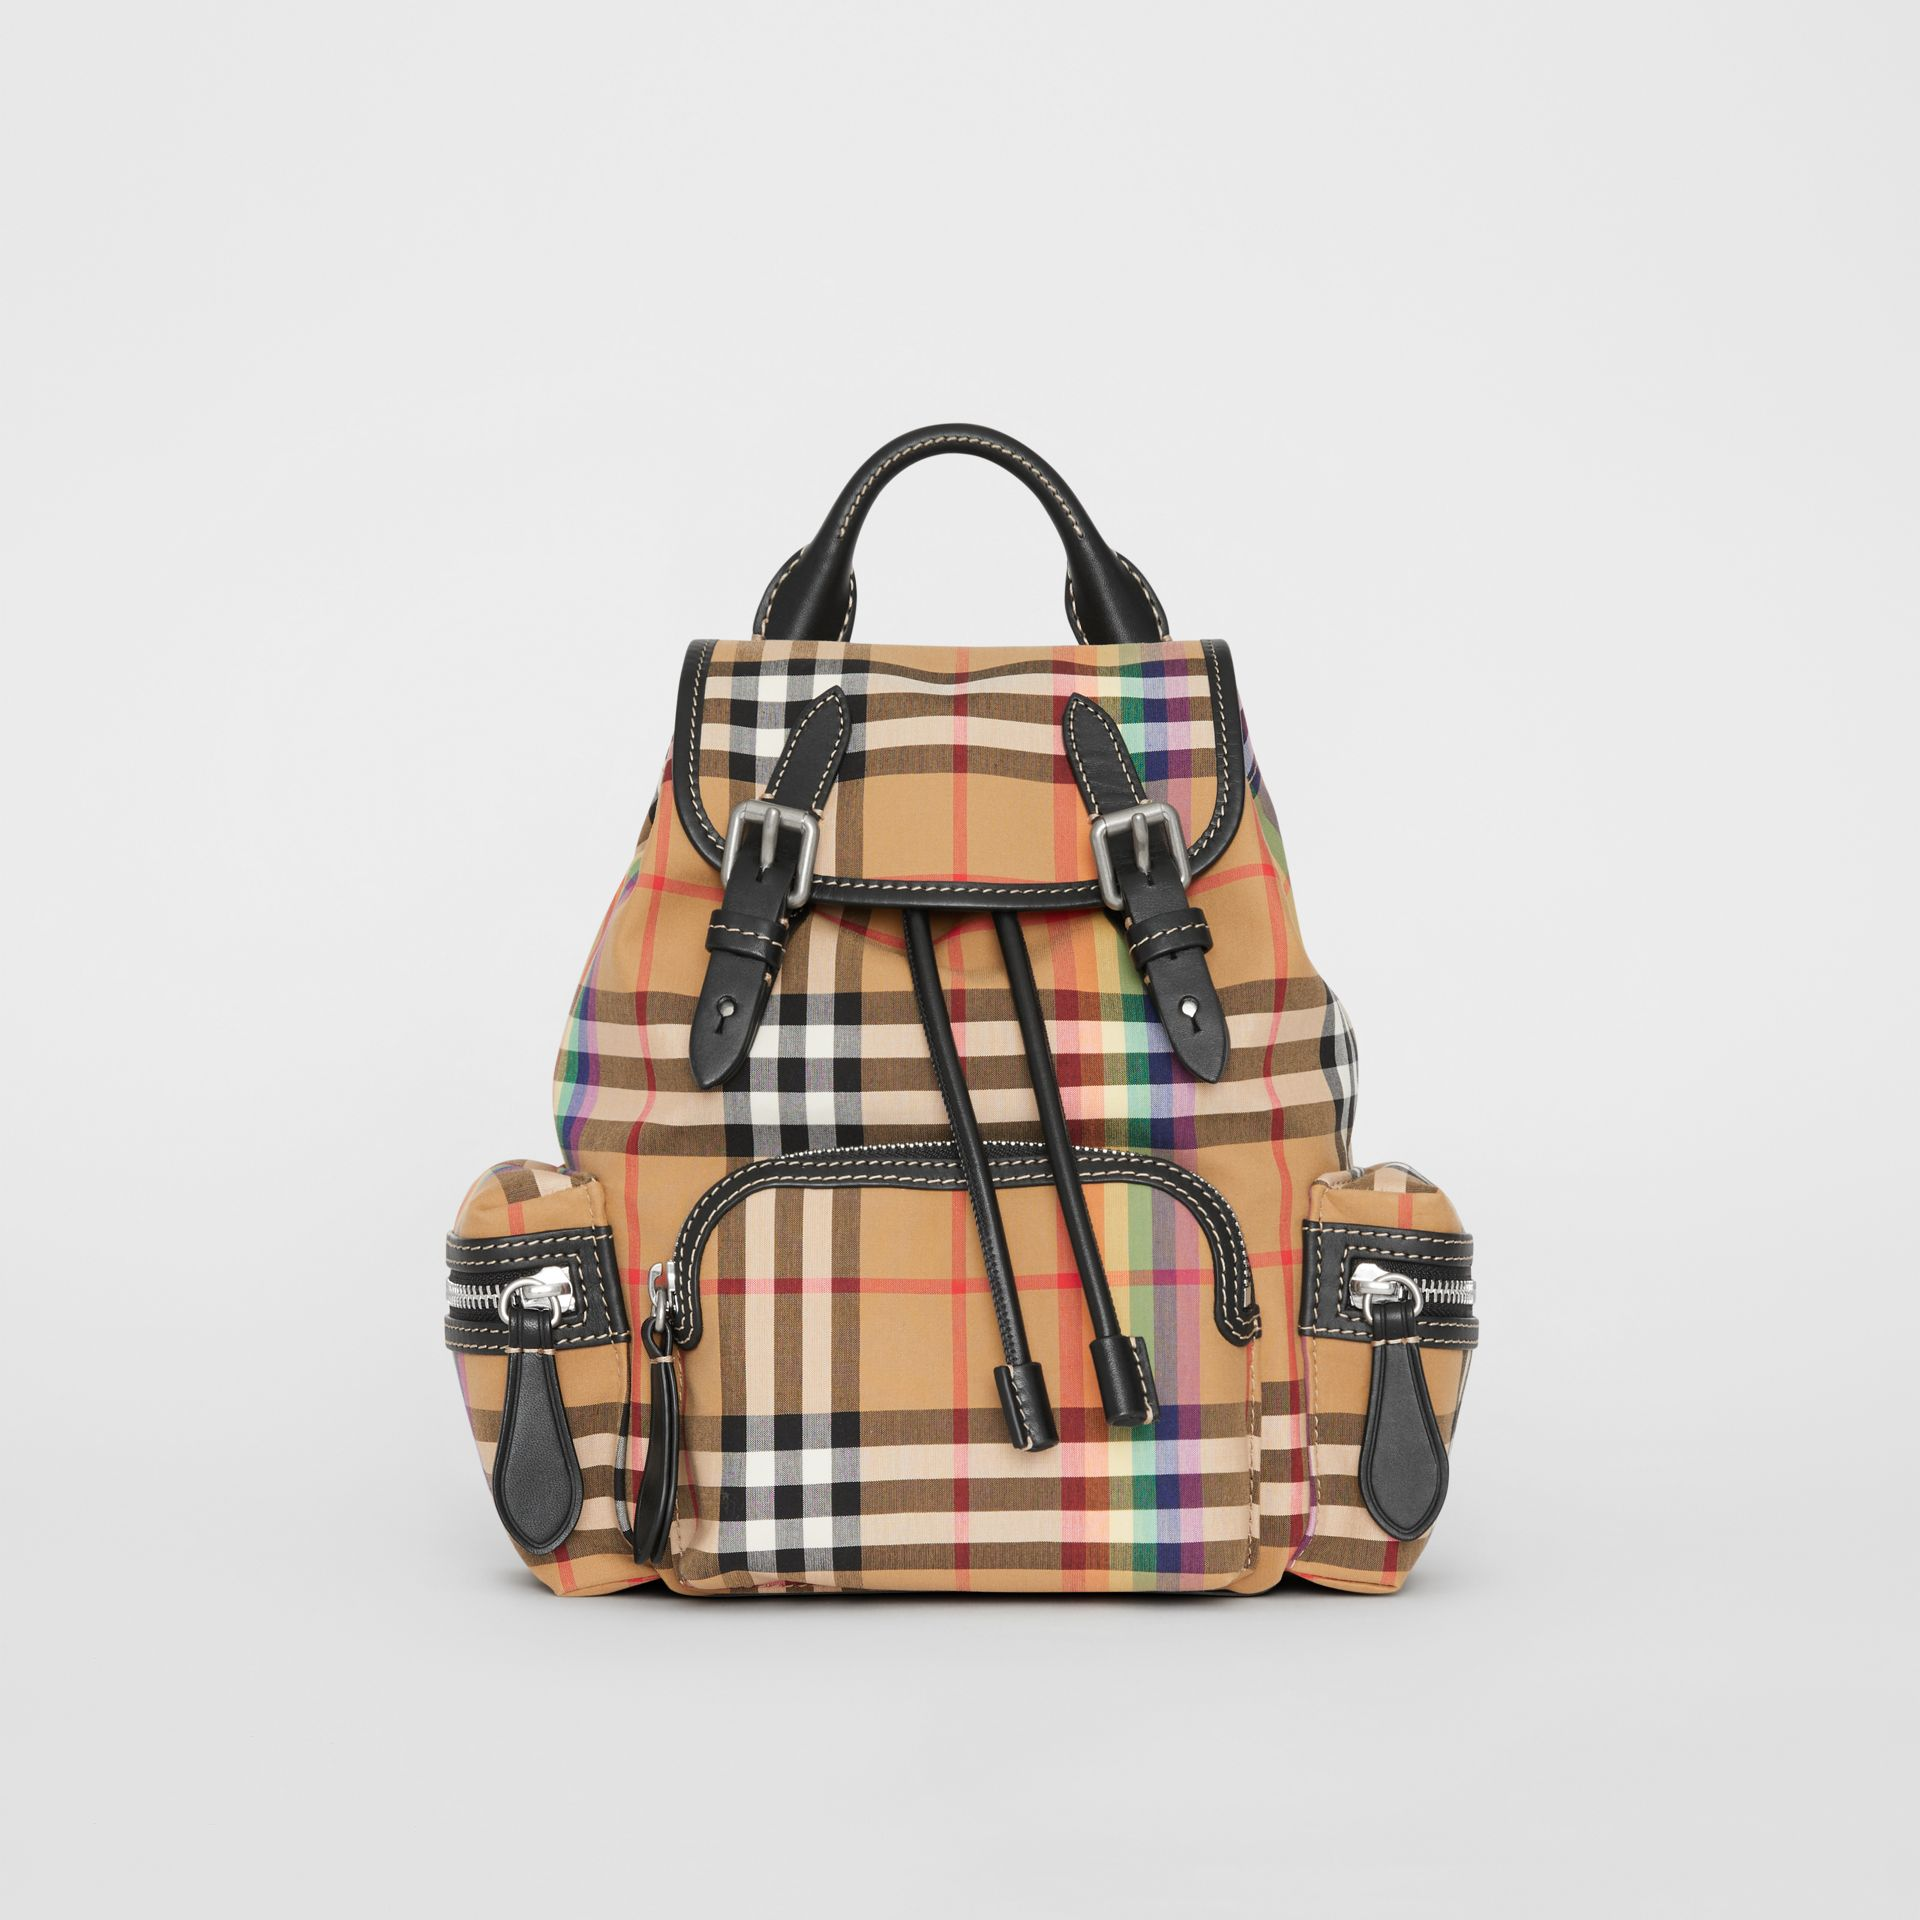 Petit sac The Rucksack à bandoulière avec motif Rainbow Vintage check (Jaune Antique) - Femme | Burberry Canada - photo de la galerie 0